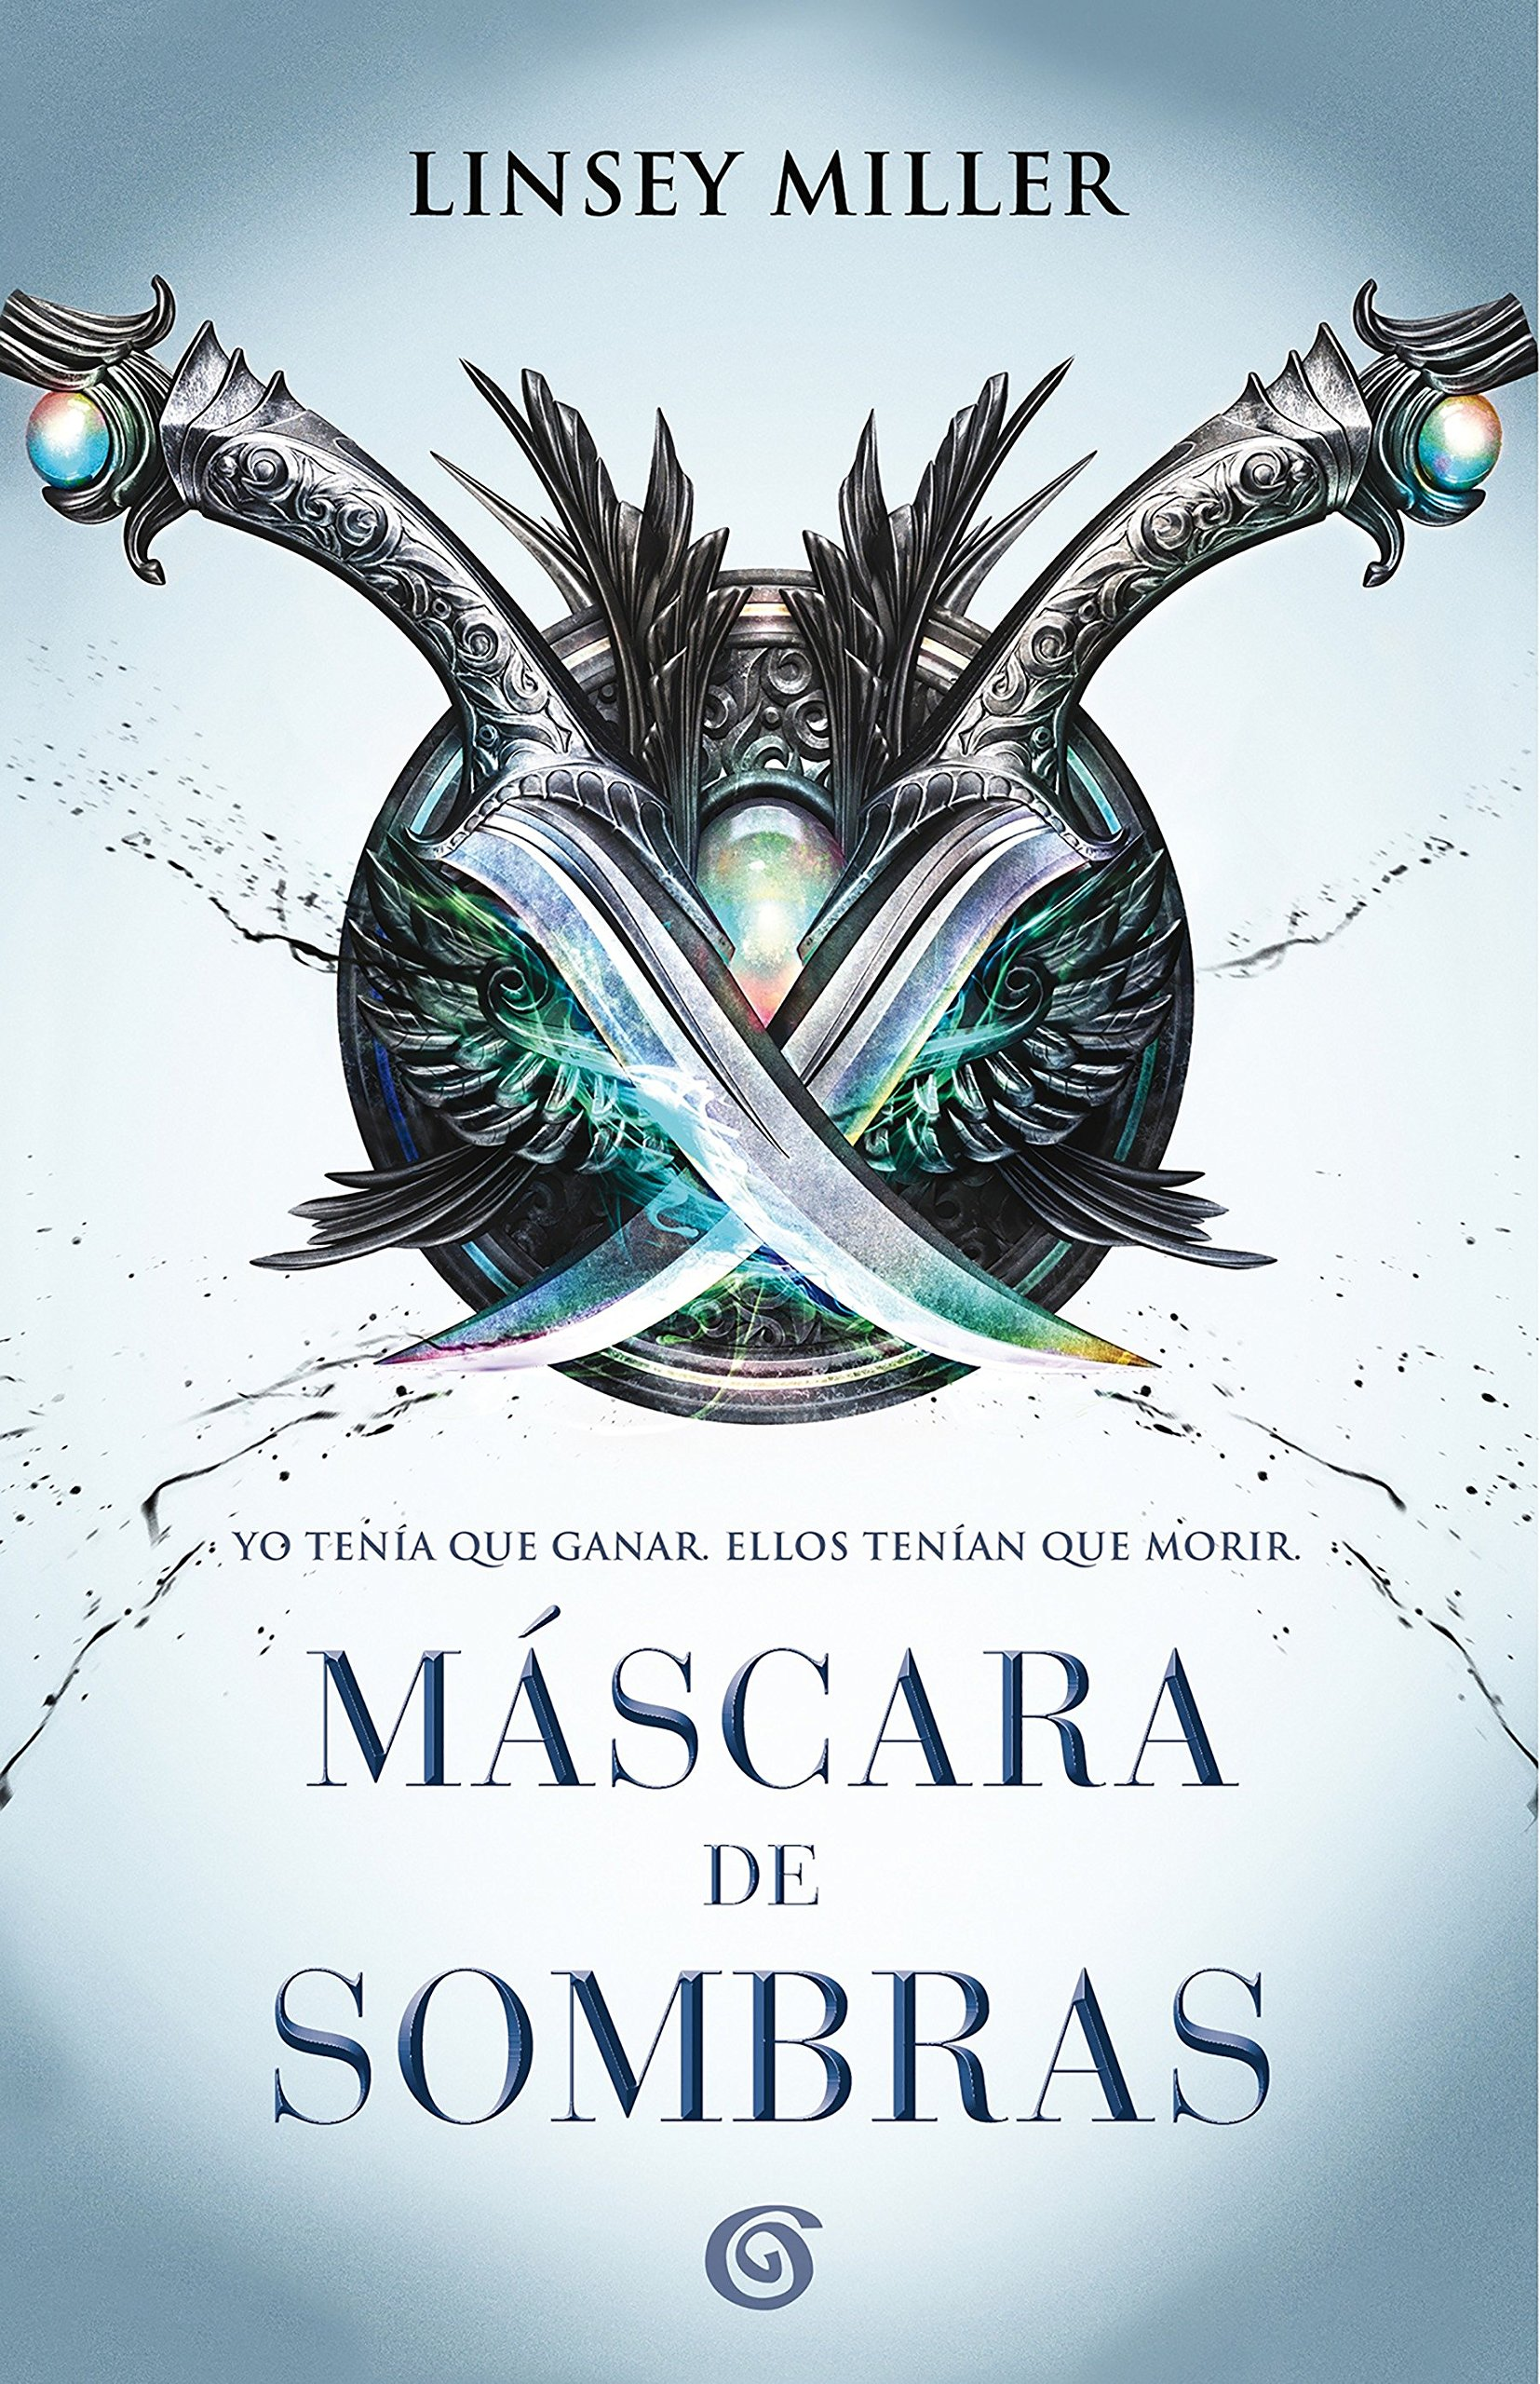 Amazon.com: Máscara de sombras / Mask of Shadows (Spanish Edition) (9788466662451): Linsey Miller: Books